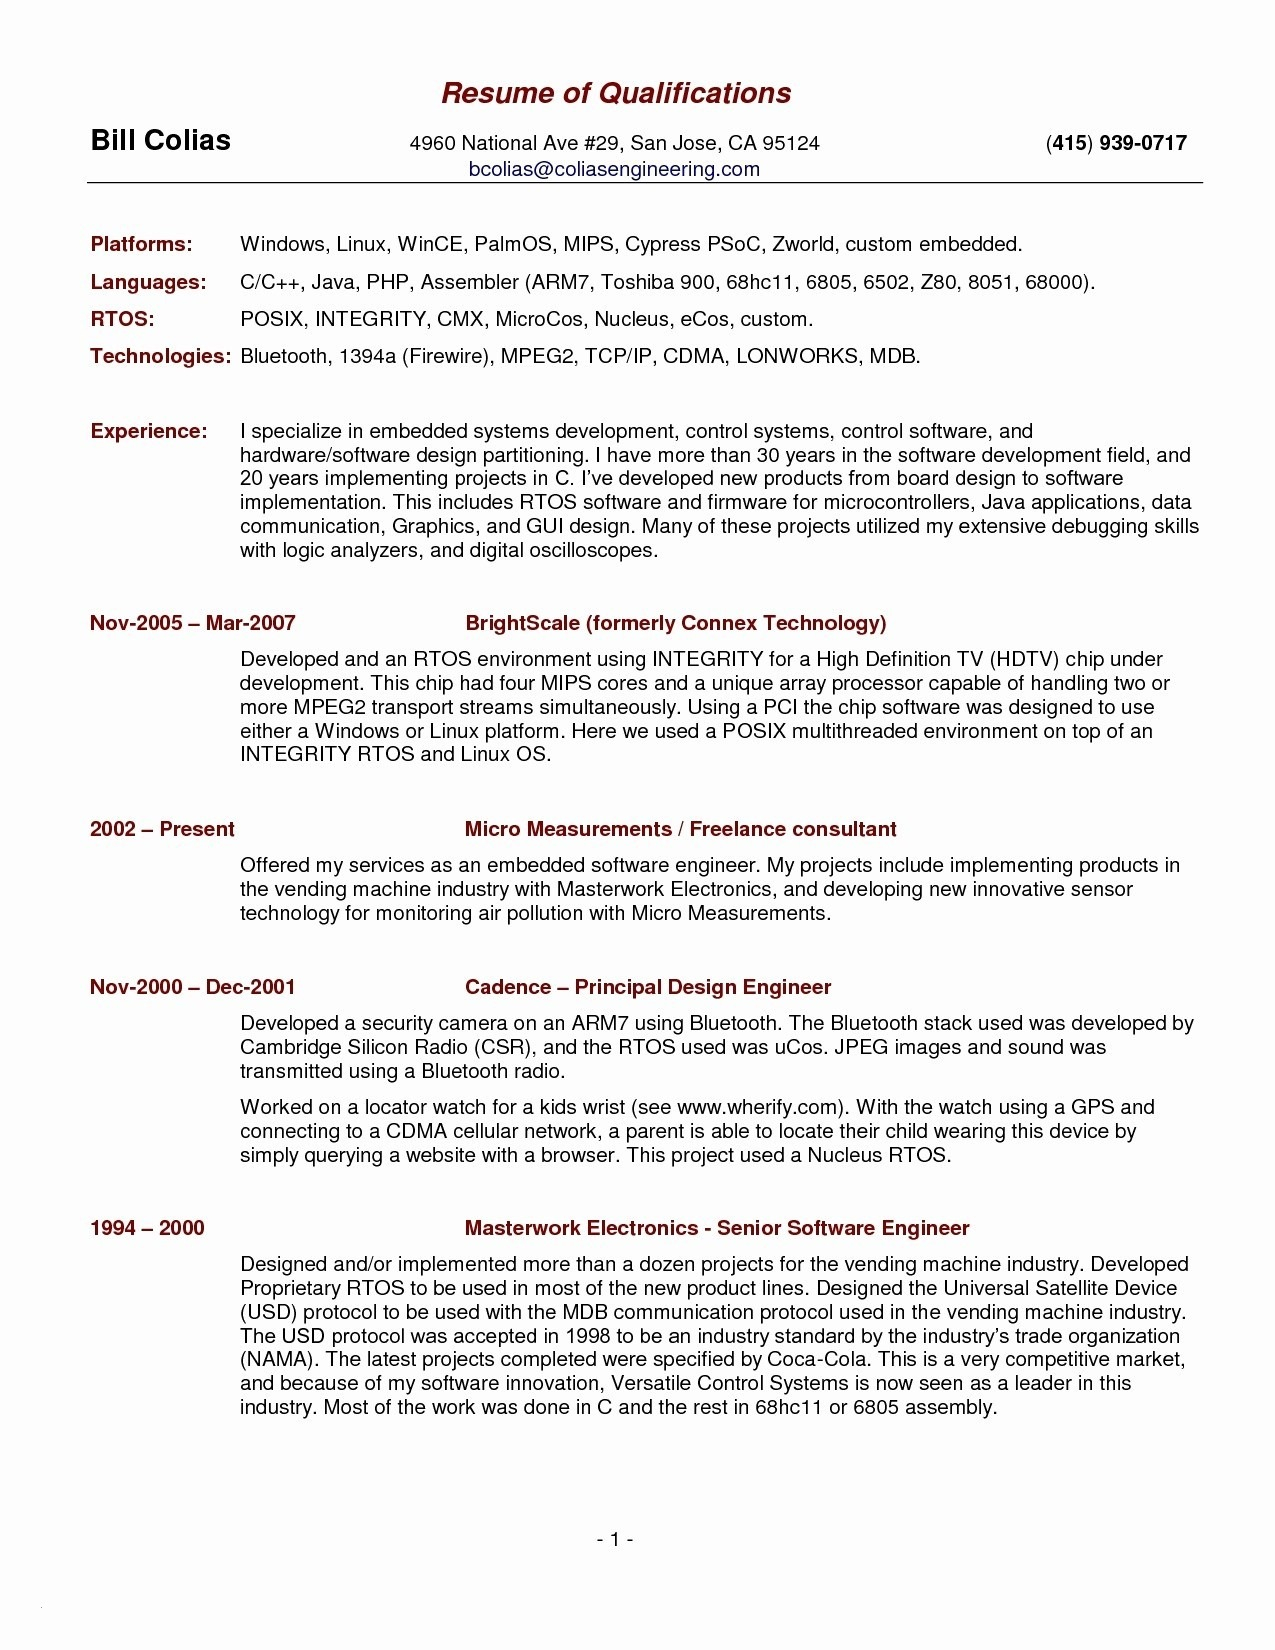 consulting resume template Collection-Resume Templates Pdf Free Inspirational Lovely Pr Resume Template Elegant Dictionary Template 0d Archives 10-l